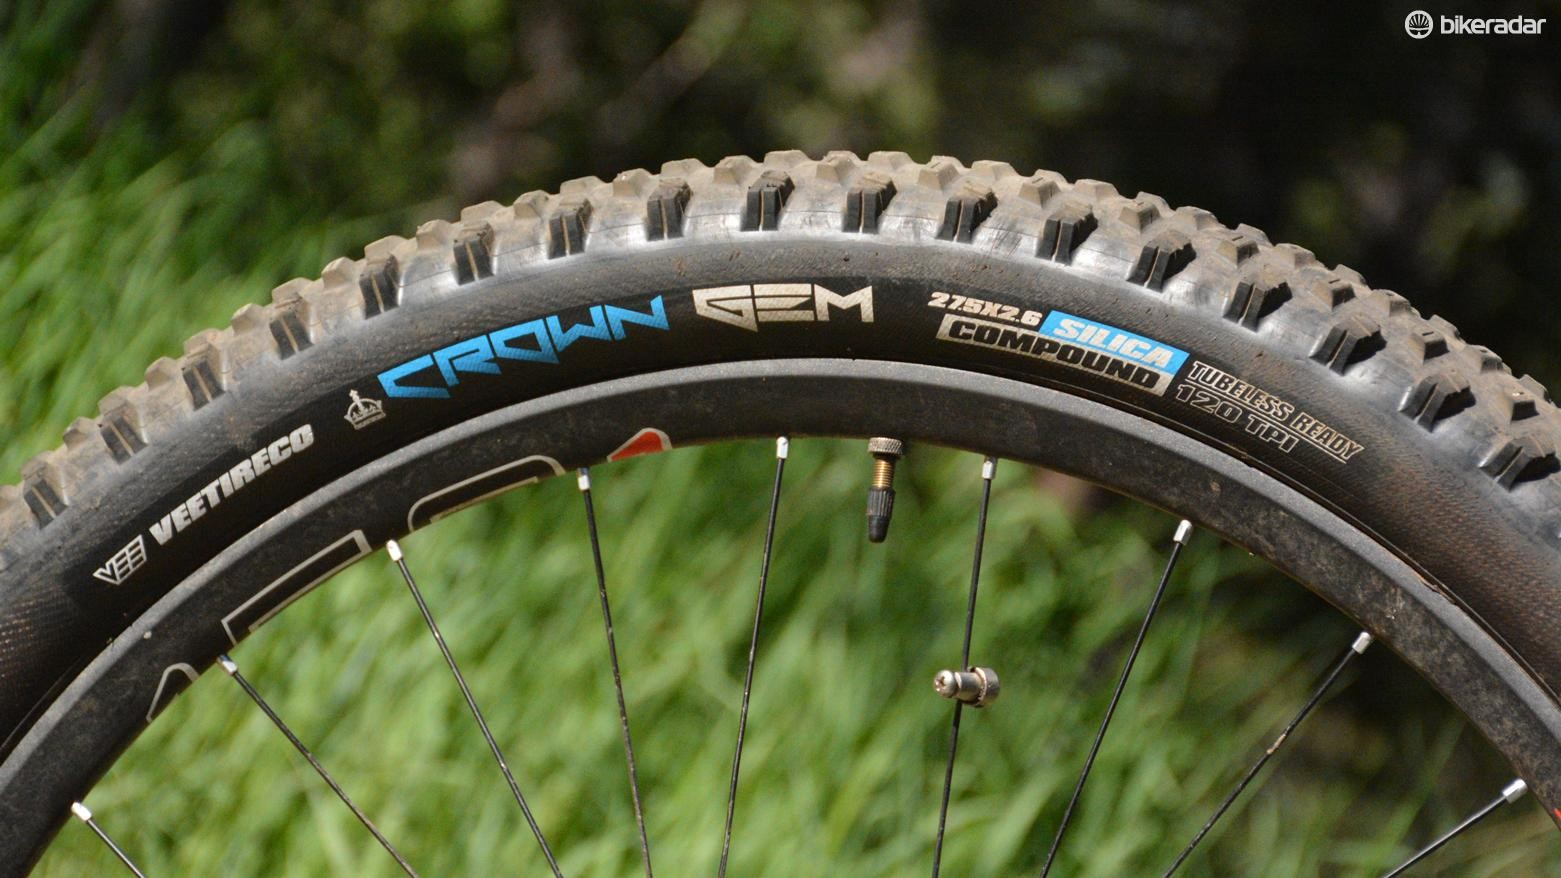 Vee Tire's Crown Gem comes in 27.5 x 2.6, 2.8 and 3.0in options